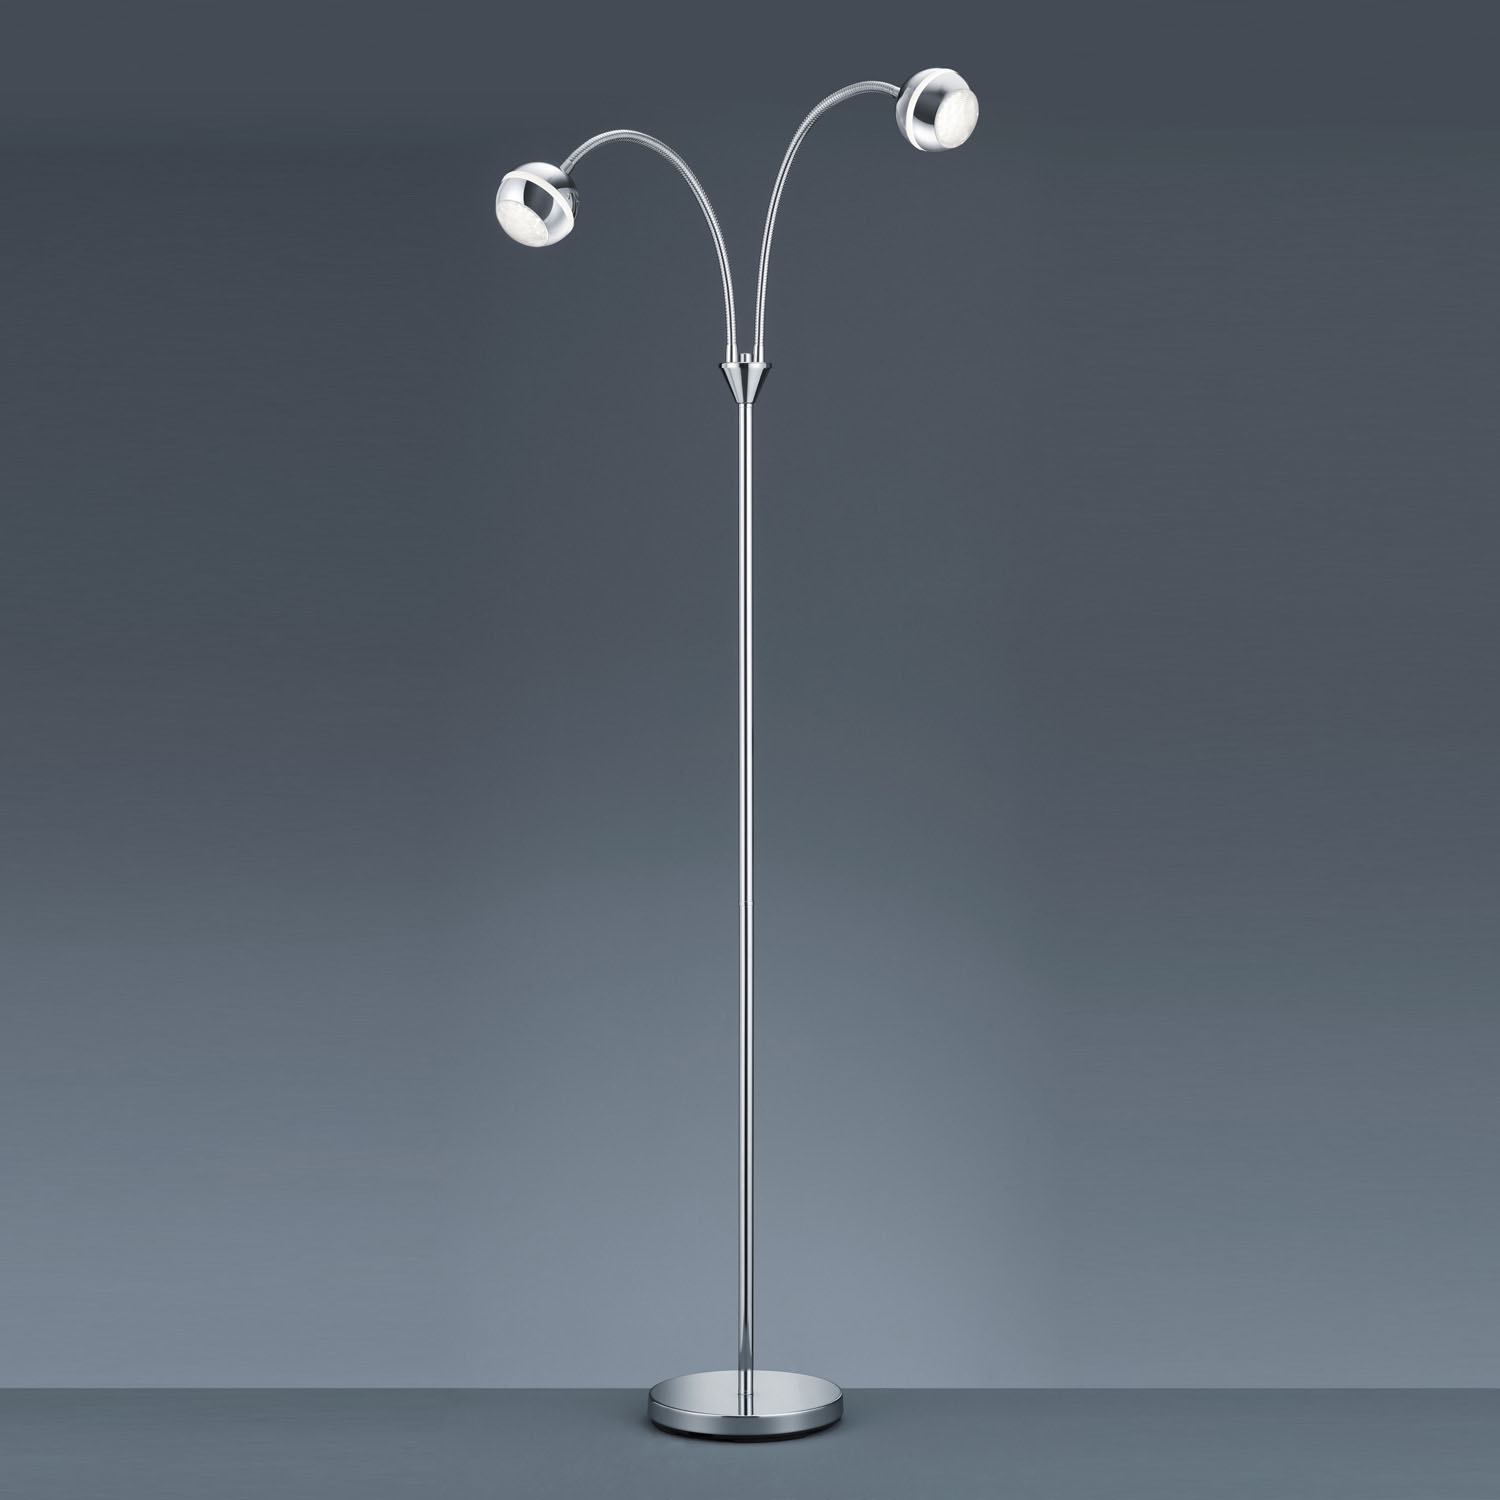 2 light floor lamp photo - 5